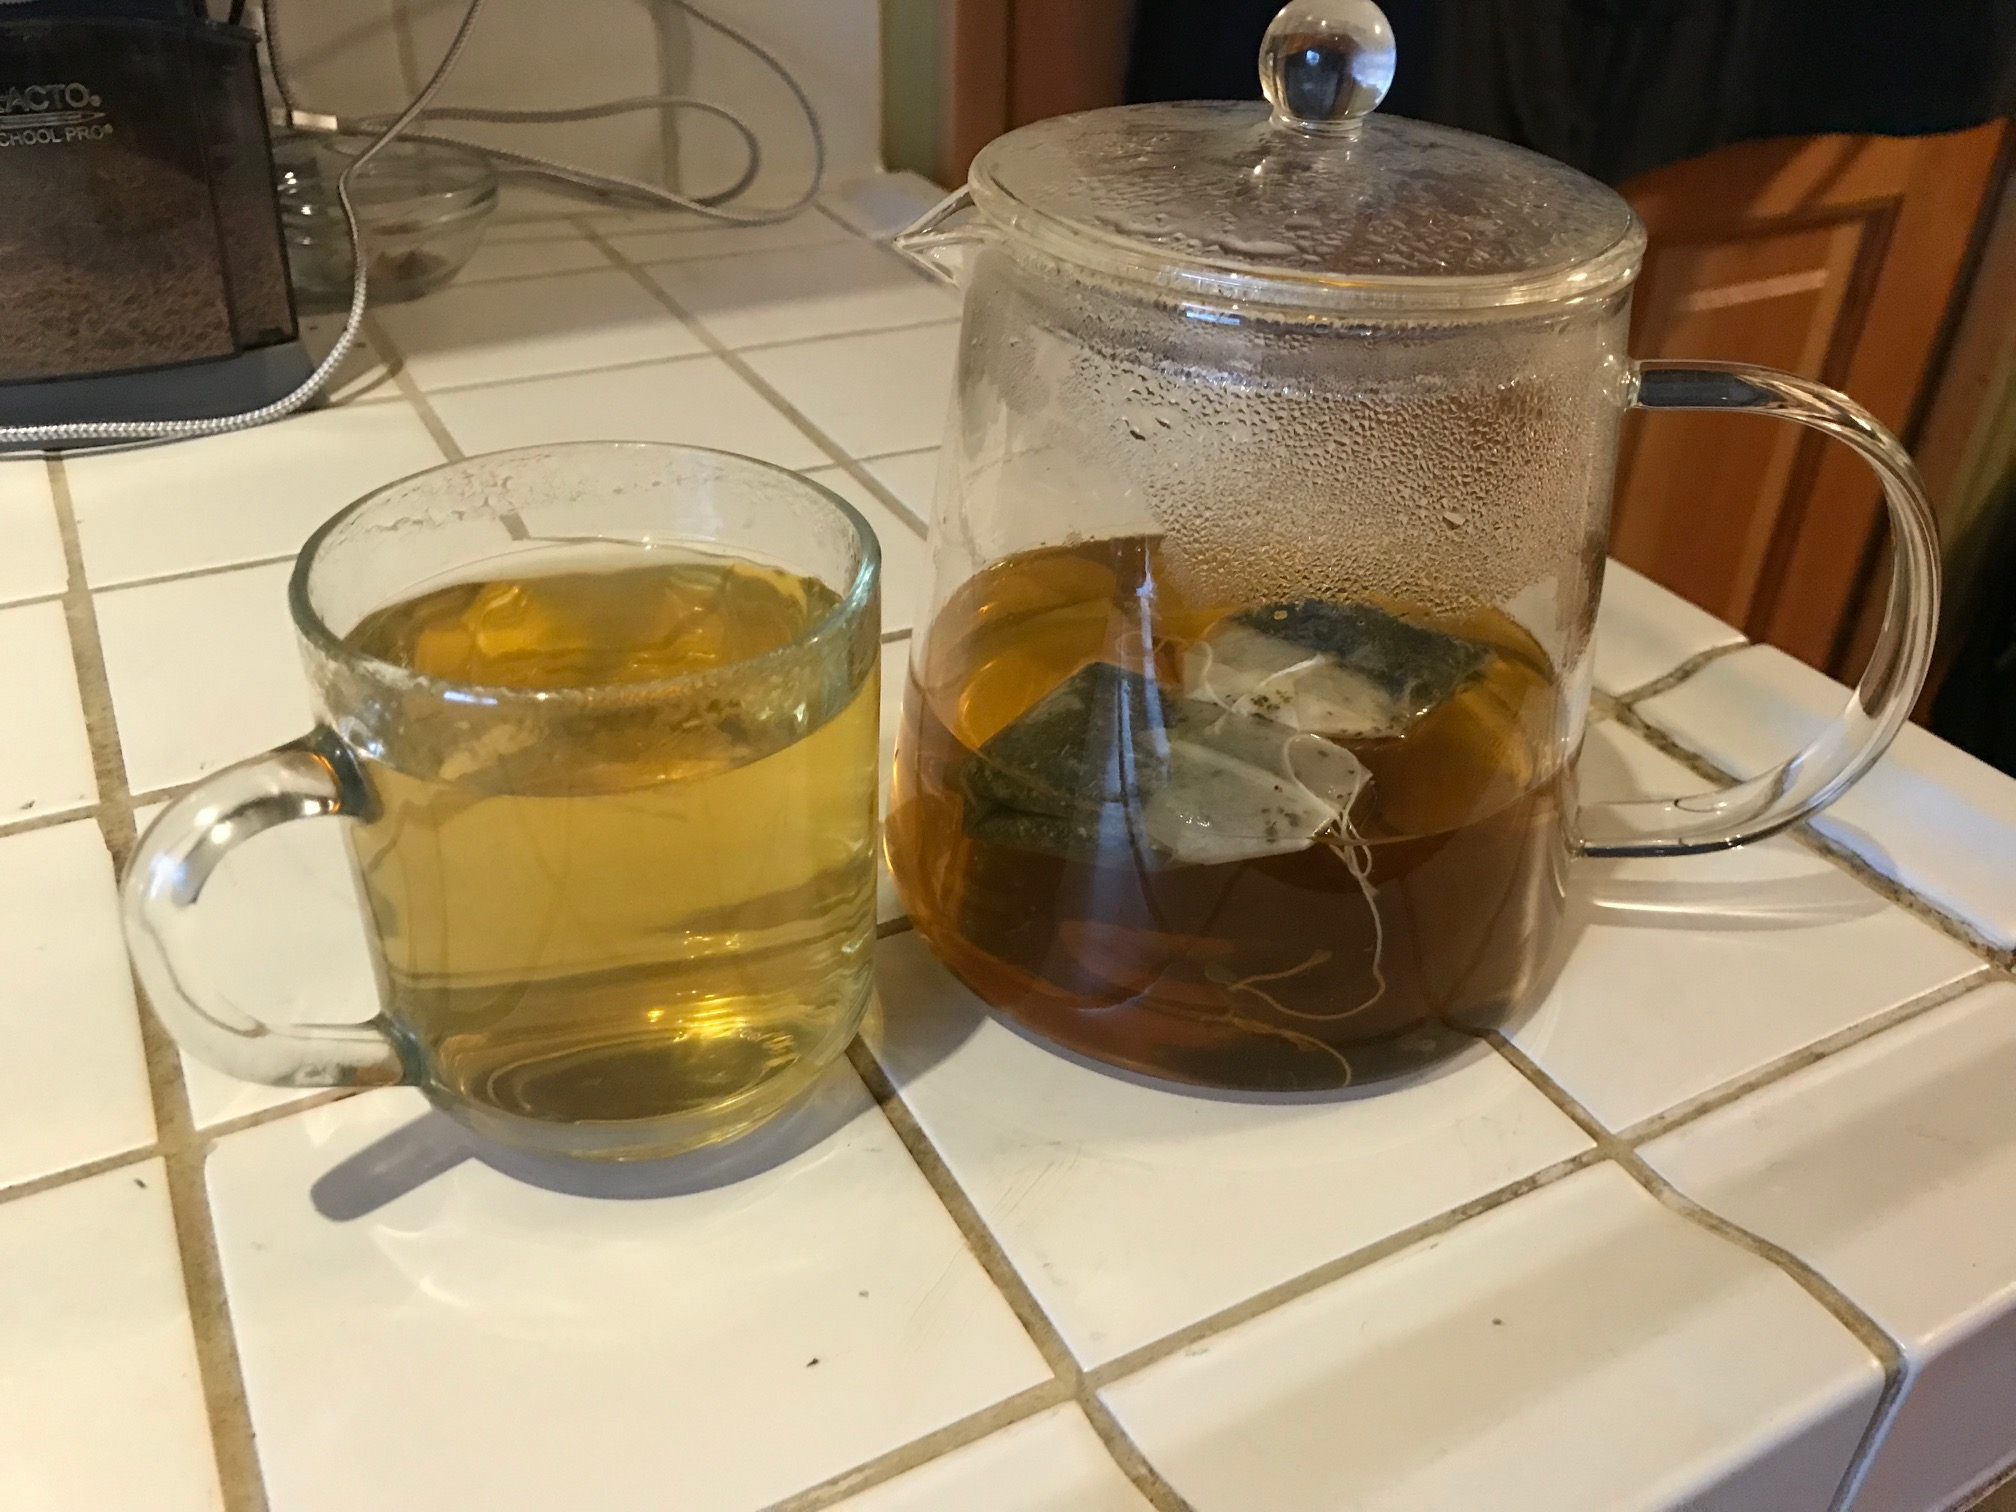 This is the clear borosilicate glass tea pot I use in my home. (Yes, it is Lead-free and stovetop safe!)